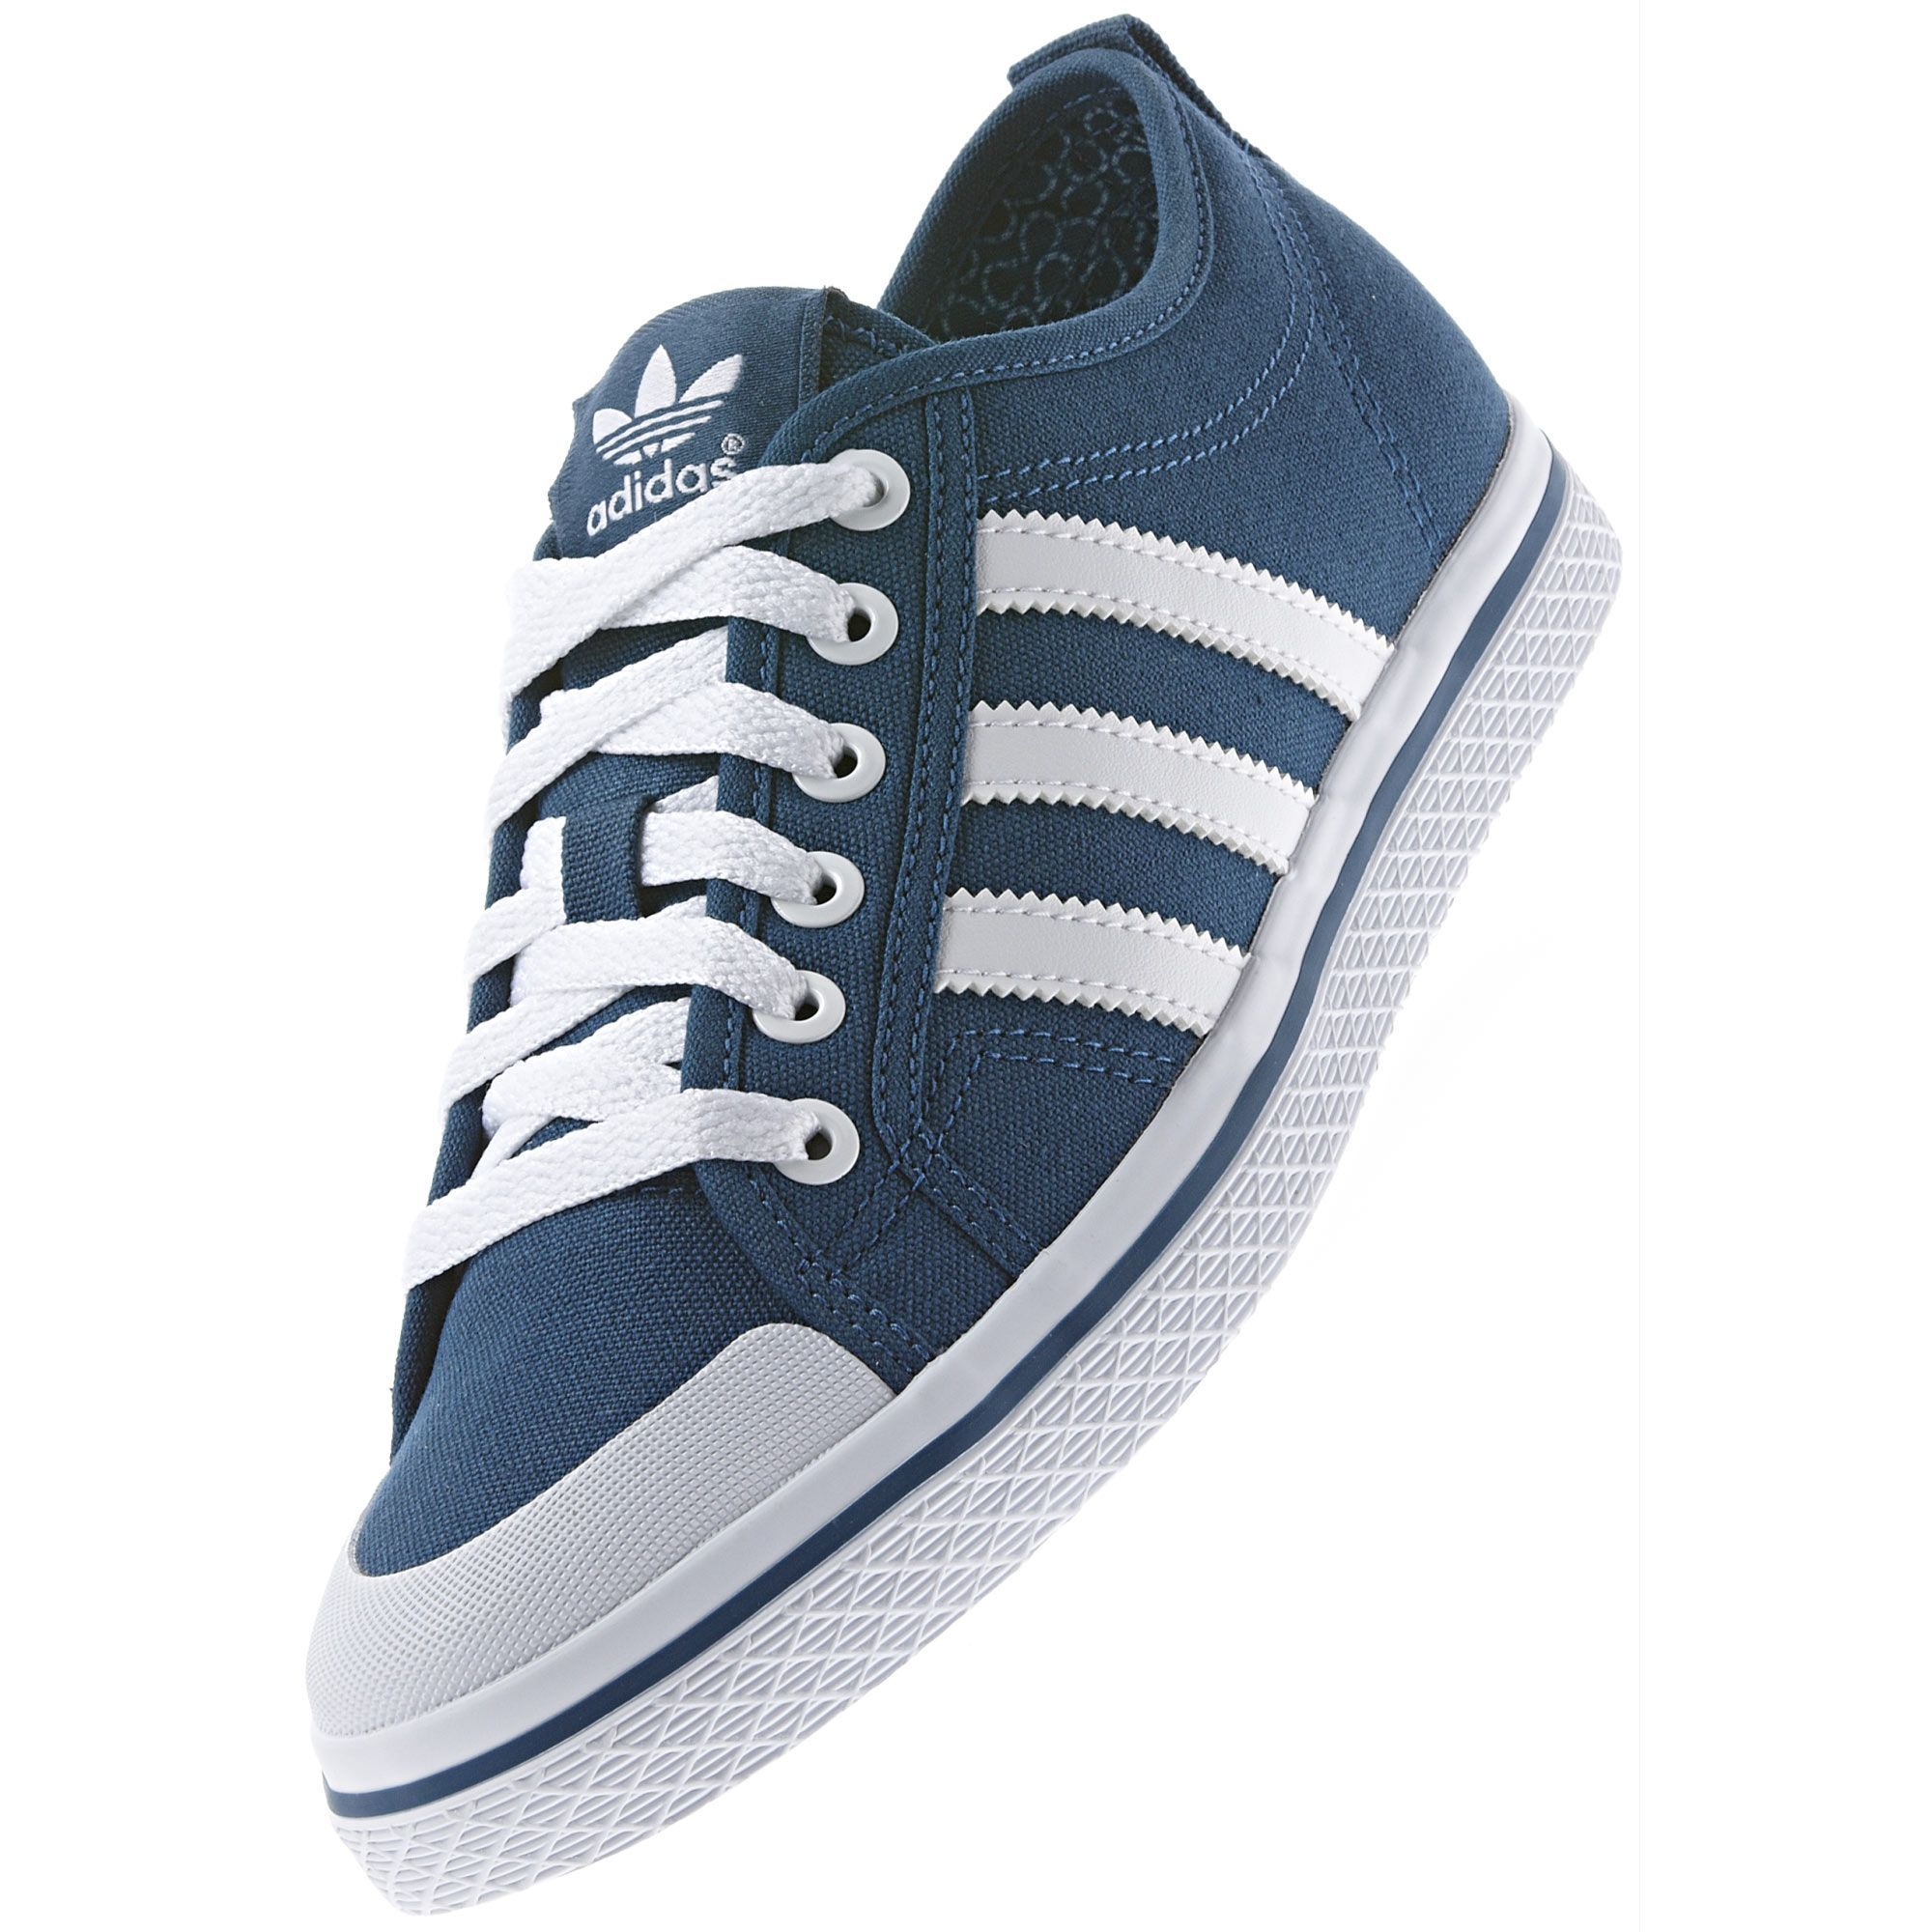 Honey AdidasChile Zapatillas Mujer Low Casuales Stripes qSzVpGMU